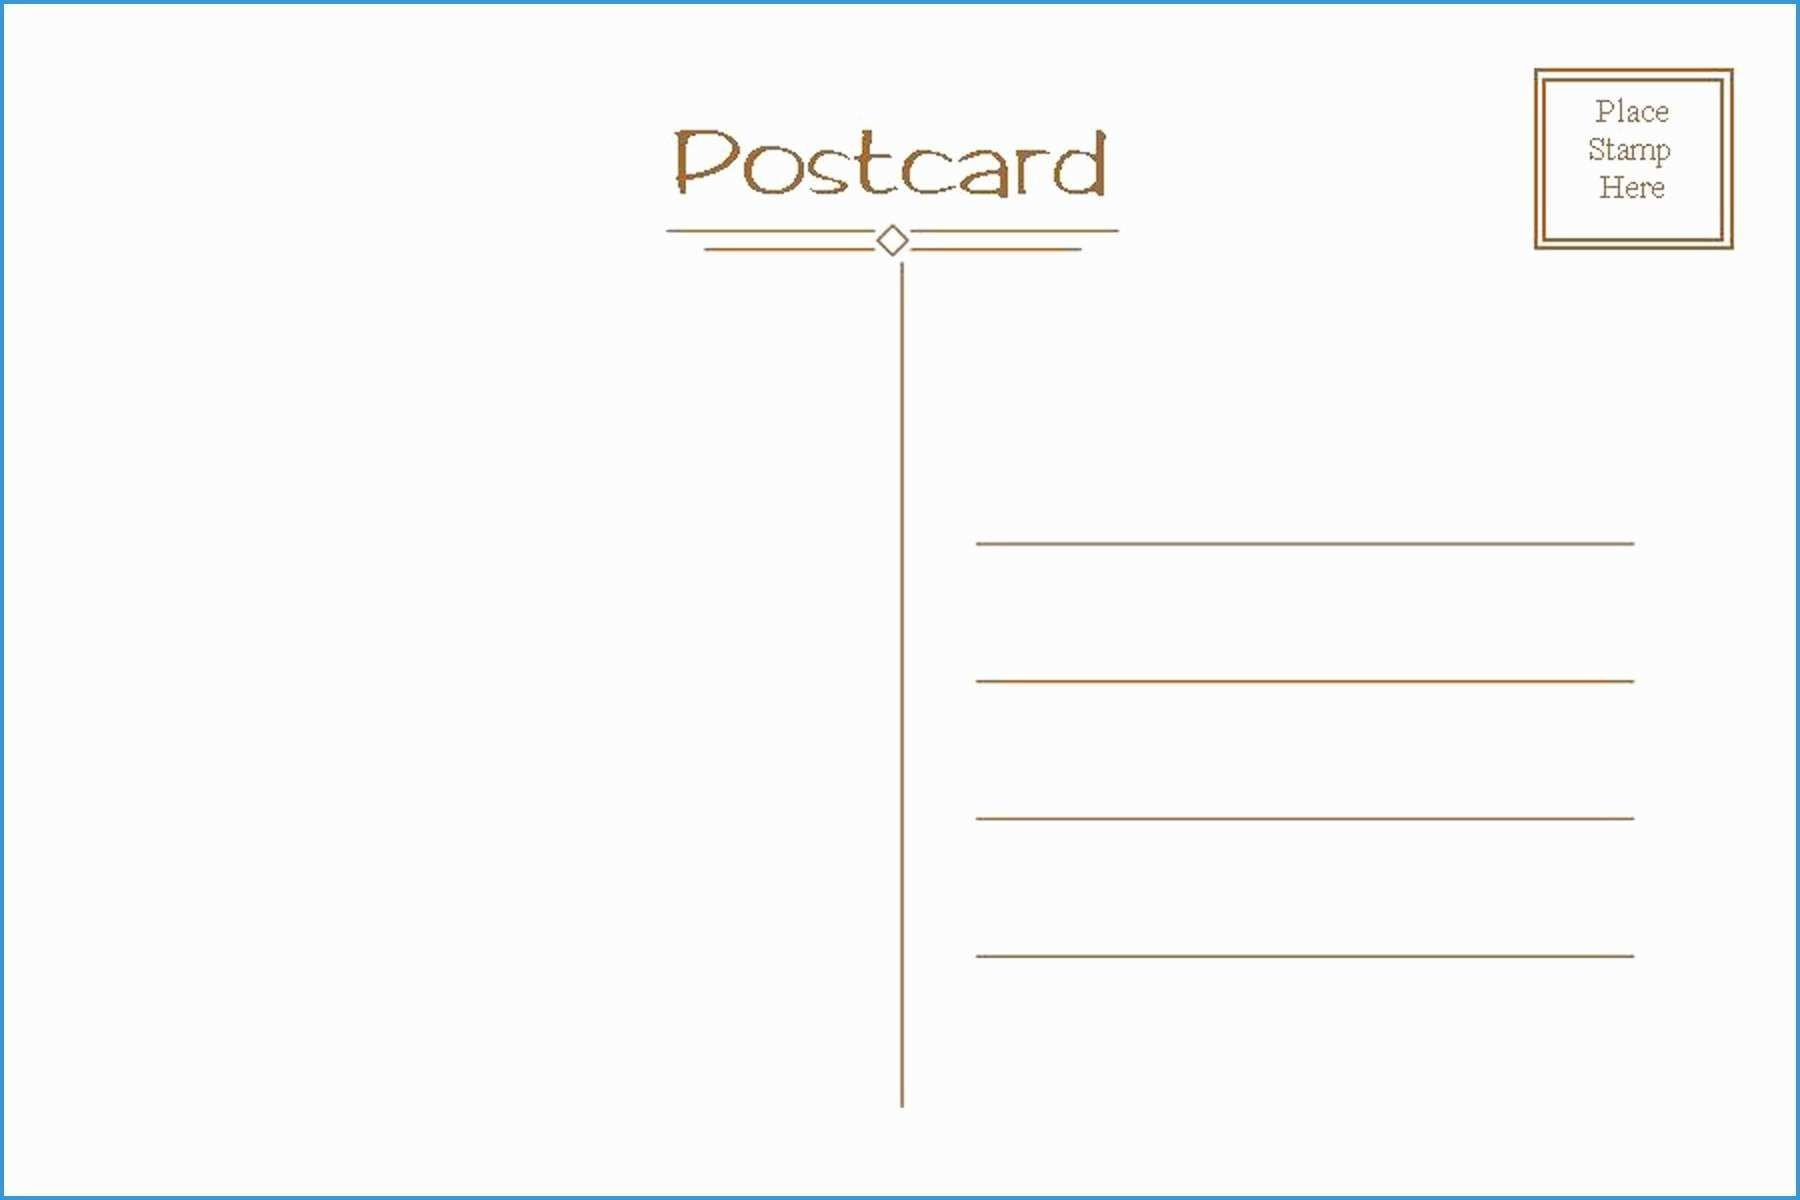 006 Exceptional Postcard Layout For Microsoft Word Highest Quality  4 TemplateFull